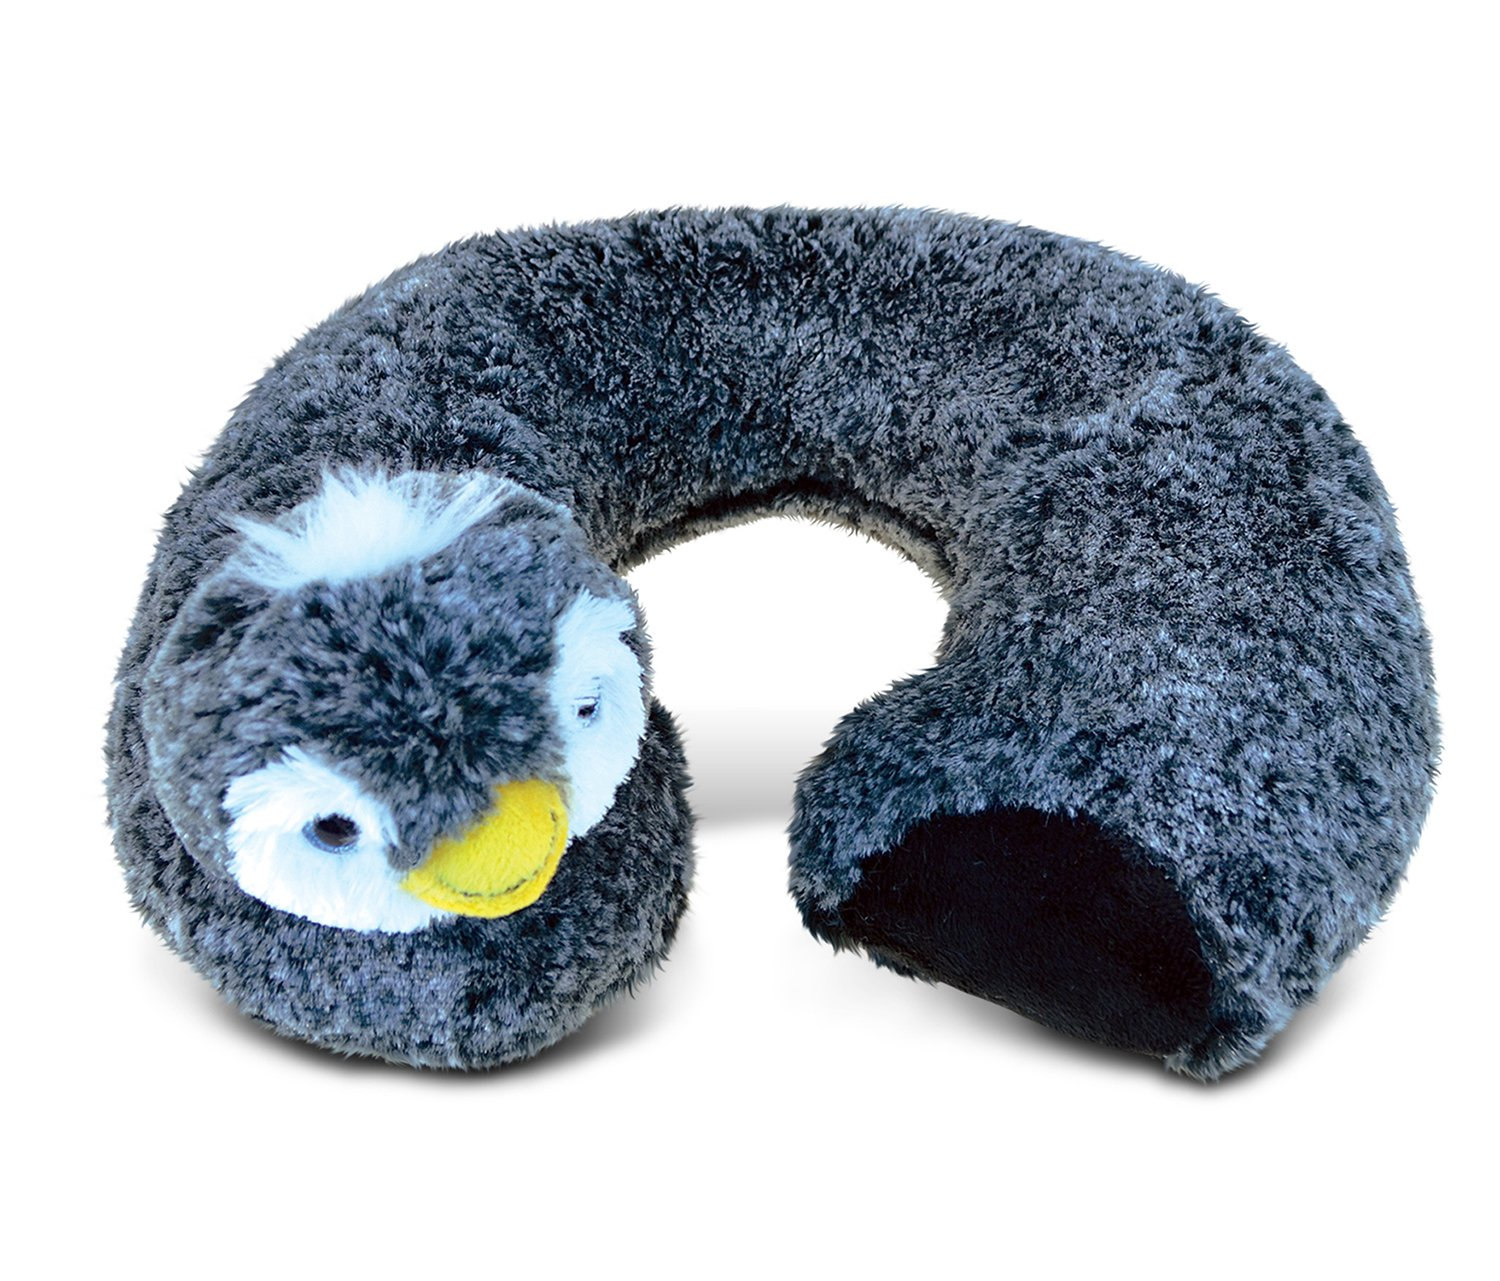 Puzzled Penguin Super-Soft Stuffed Plush Travel Neck Pillow Cuddly Animal - Animals / Birds/ Ocean Theme - 11 INCH - Great head Support - Item #5792